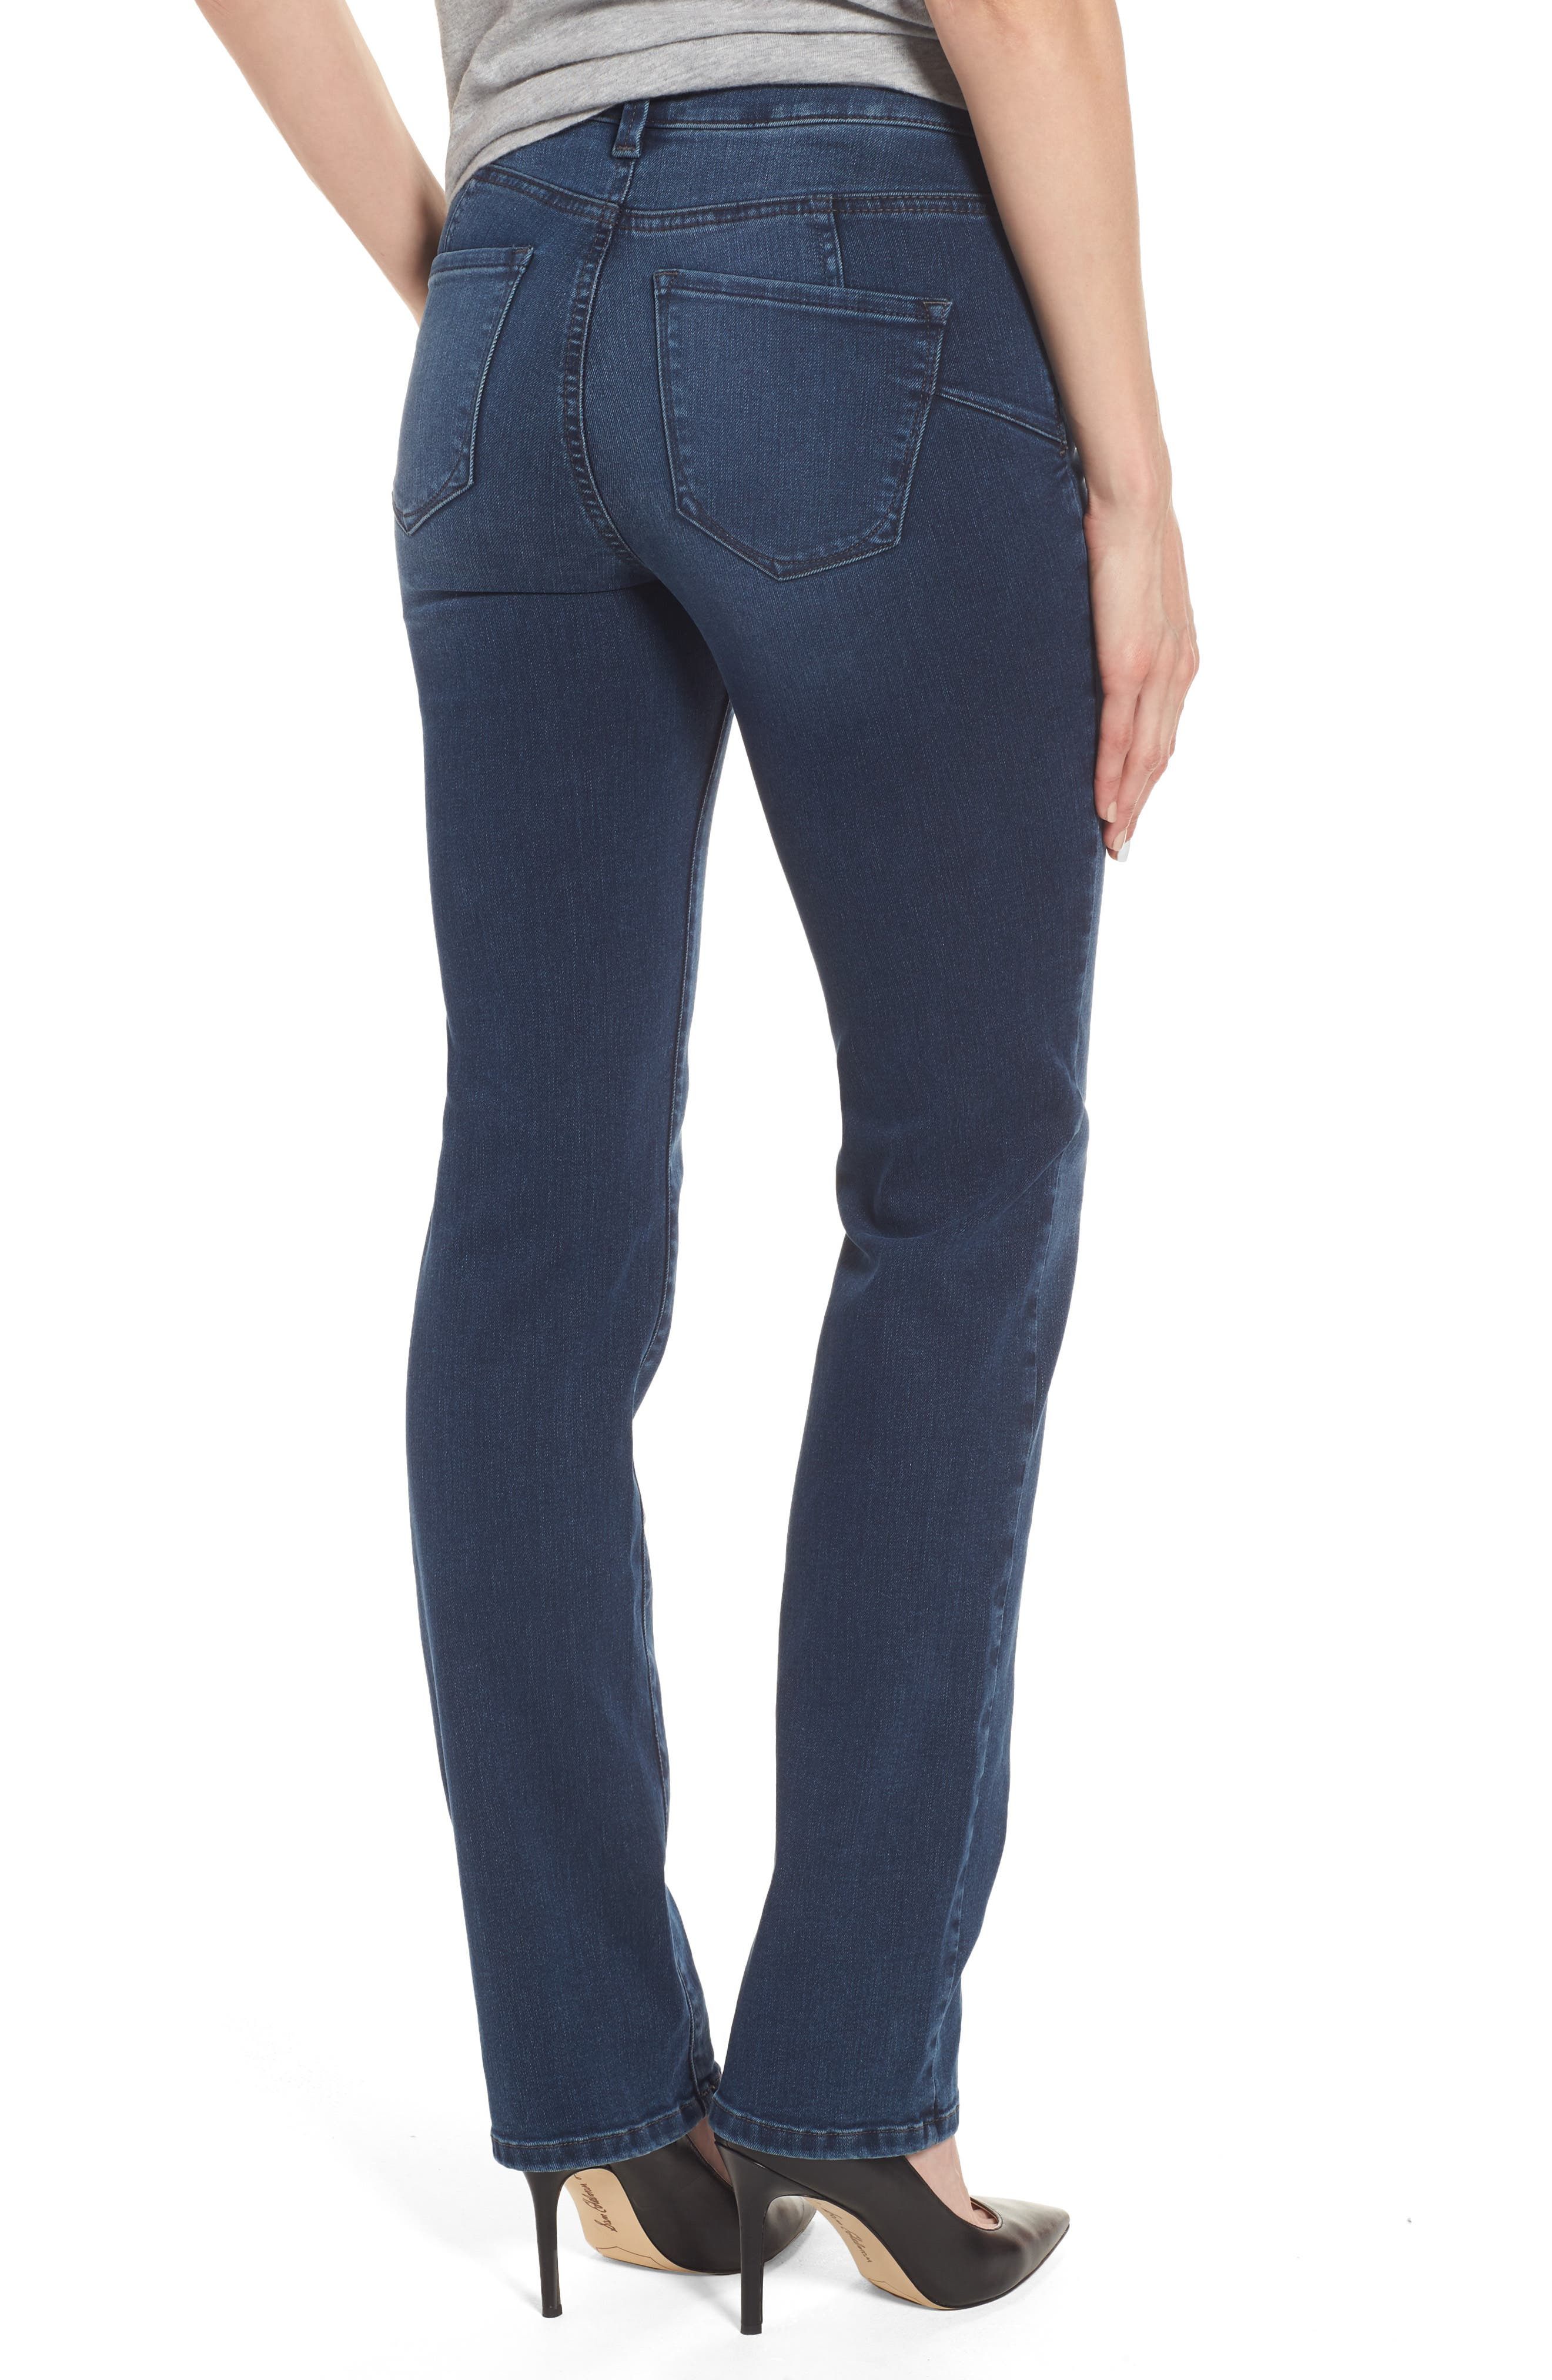 Marilyn Stretch Straight Leg Jeans,                             Alternate thumbnail 2, color,                             406